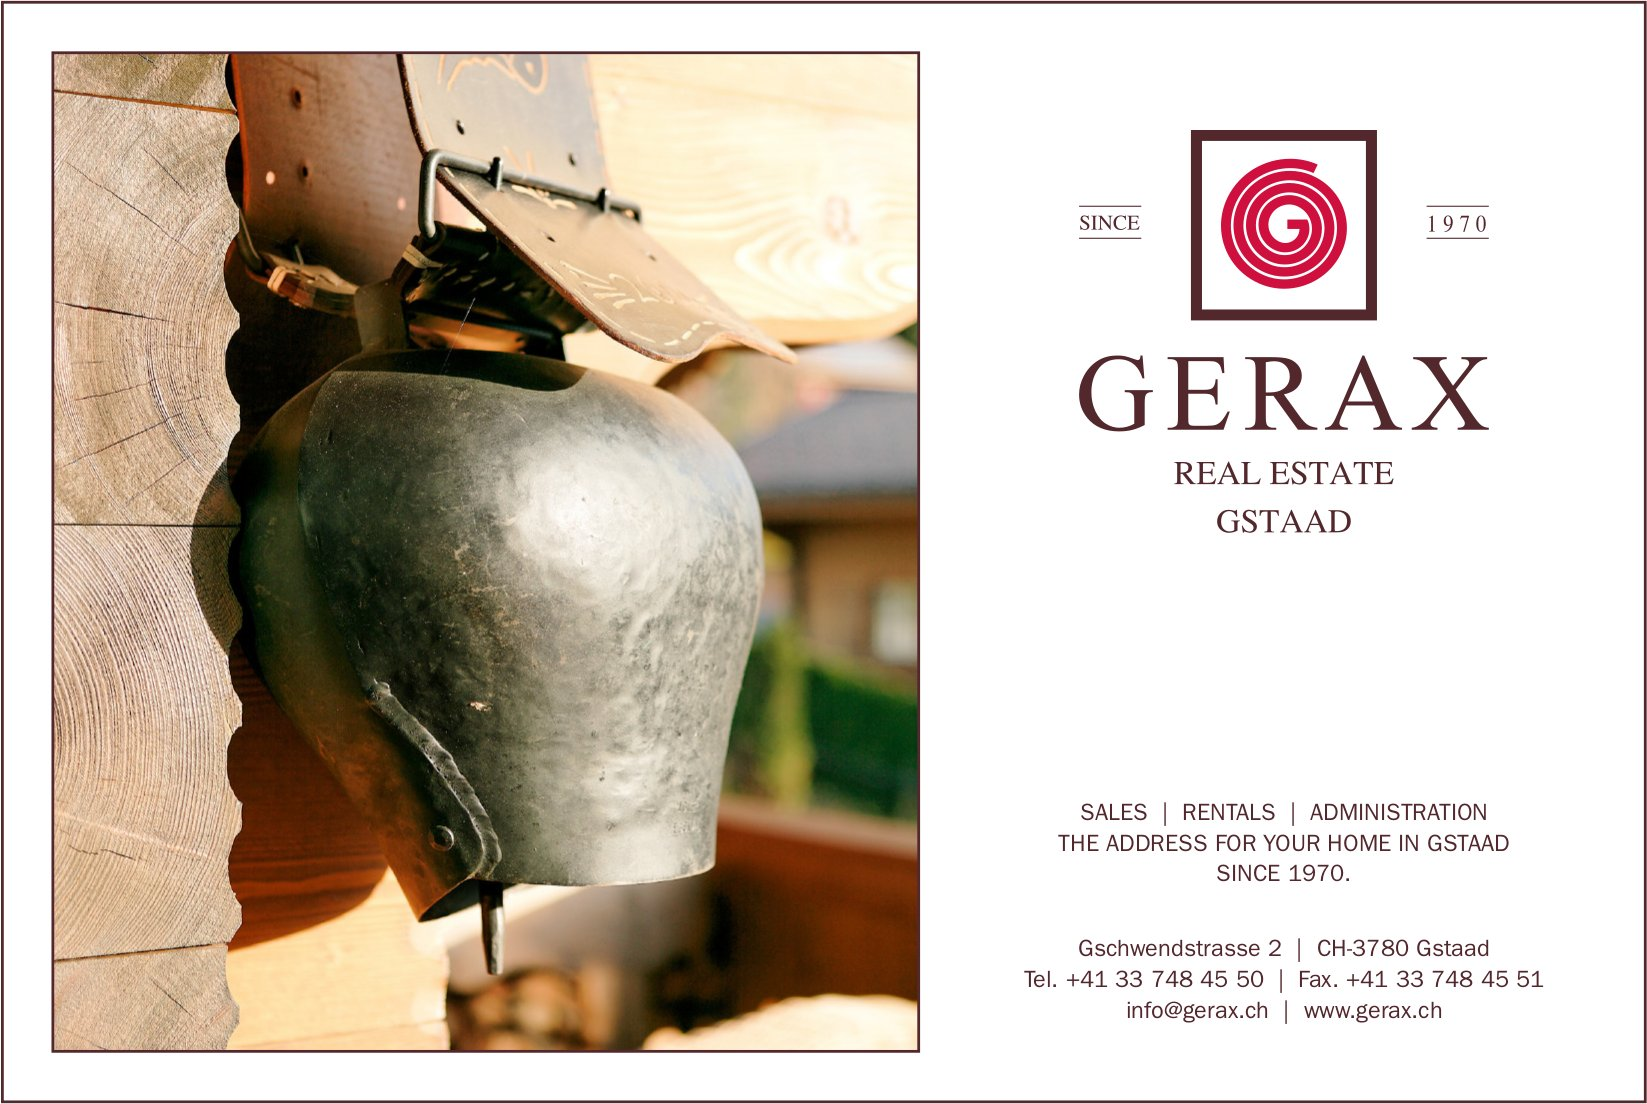 GERAX, REAL ESTATE, GSTAAD - SALES, RENTALS, ADMINISTRATION